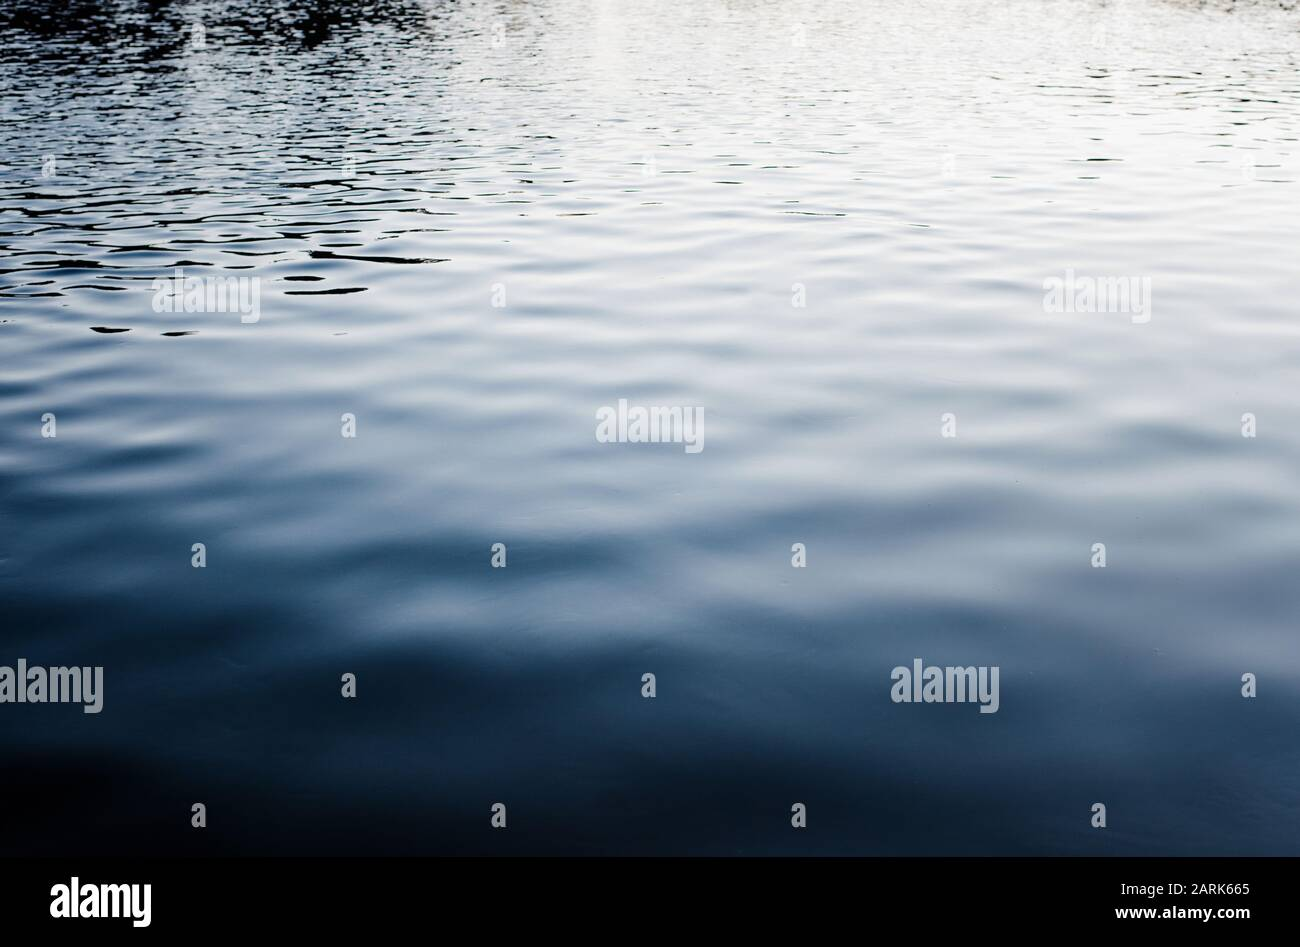 dark and moody water ripples and reflections at sunset Stock Photo